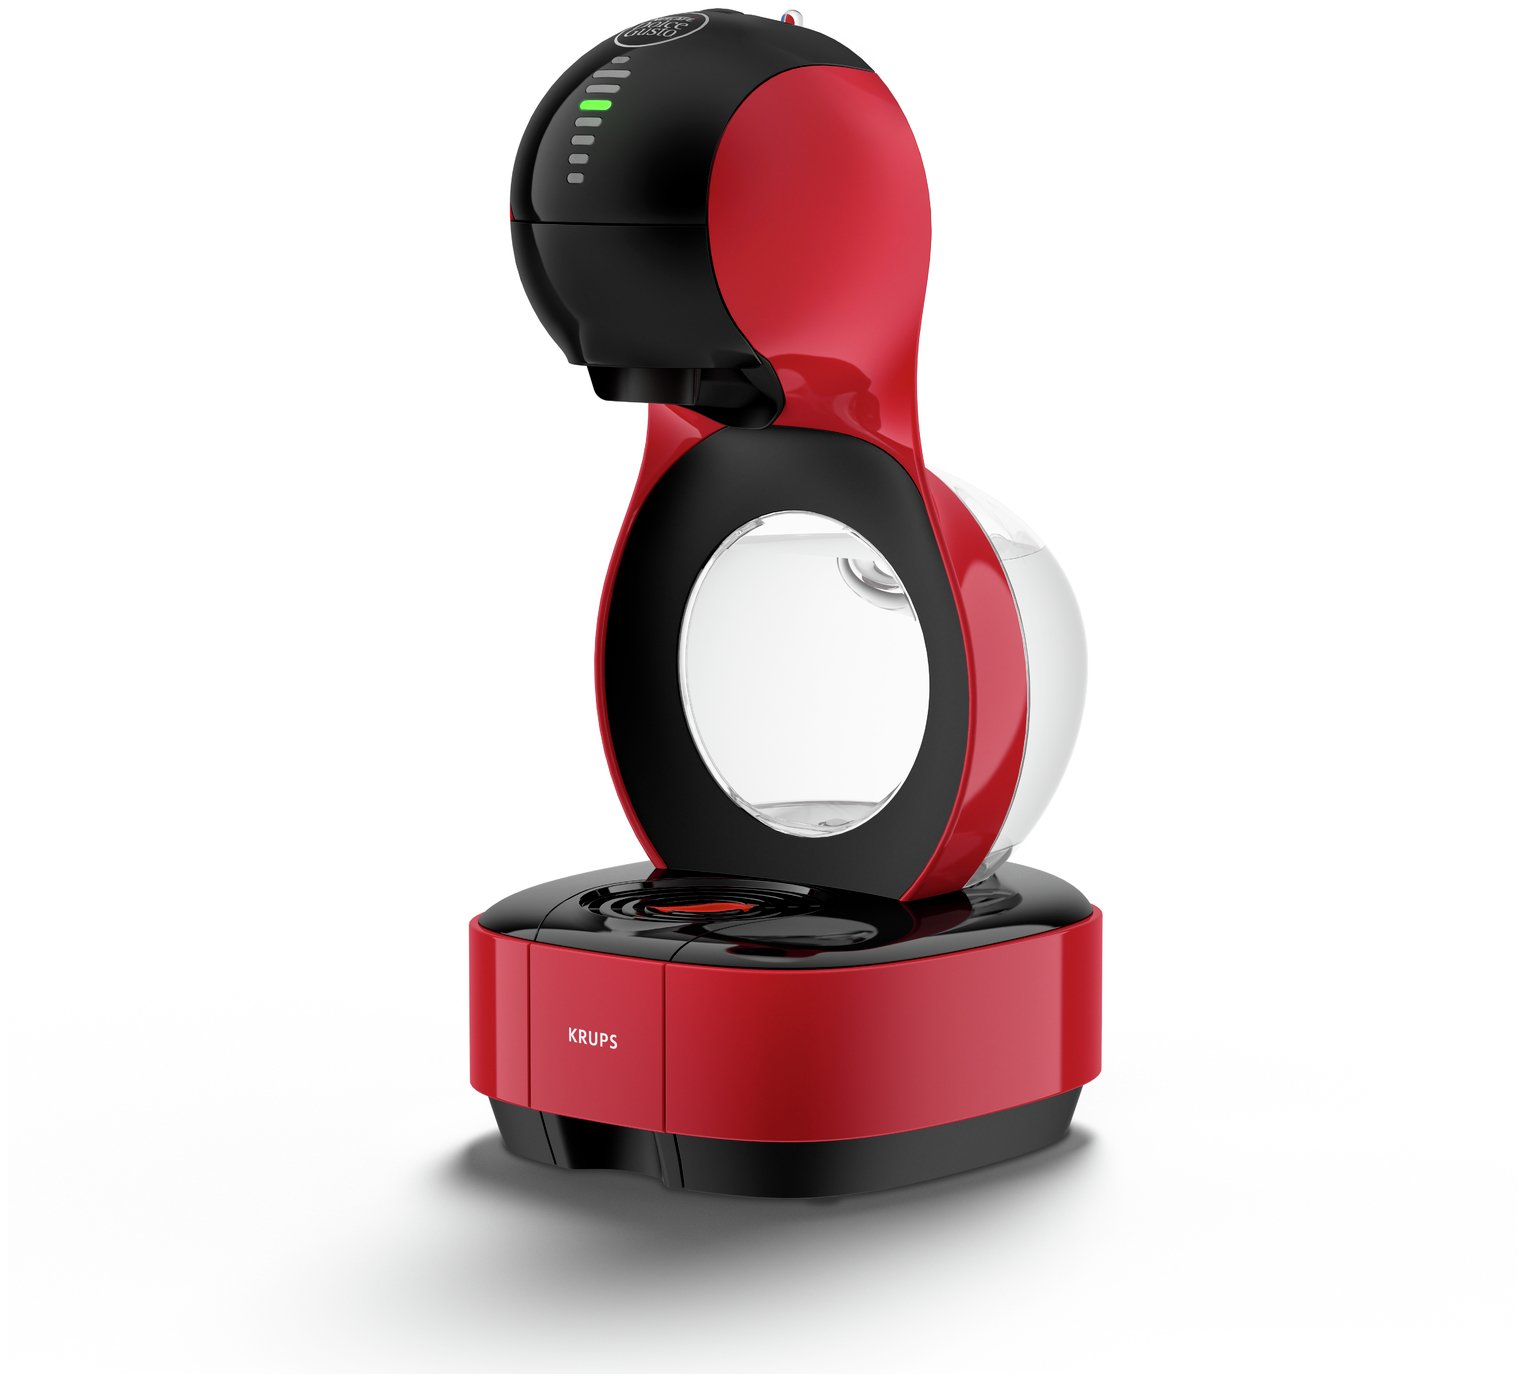 nescafe dolce gusto lumio by krups red coffee makers. Black Bedroom Furniture Sets. Home Design Ideas